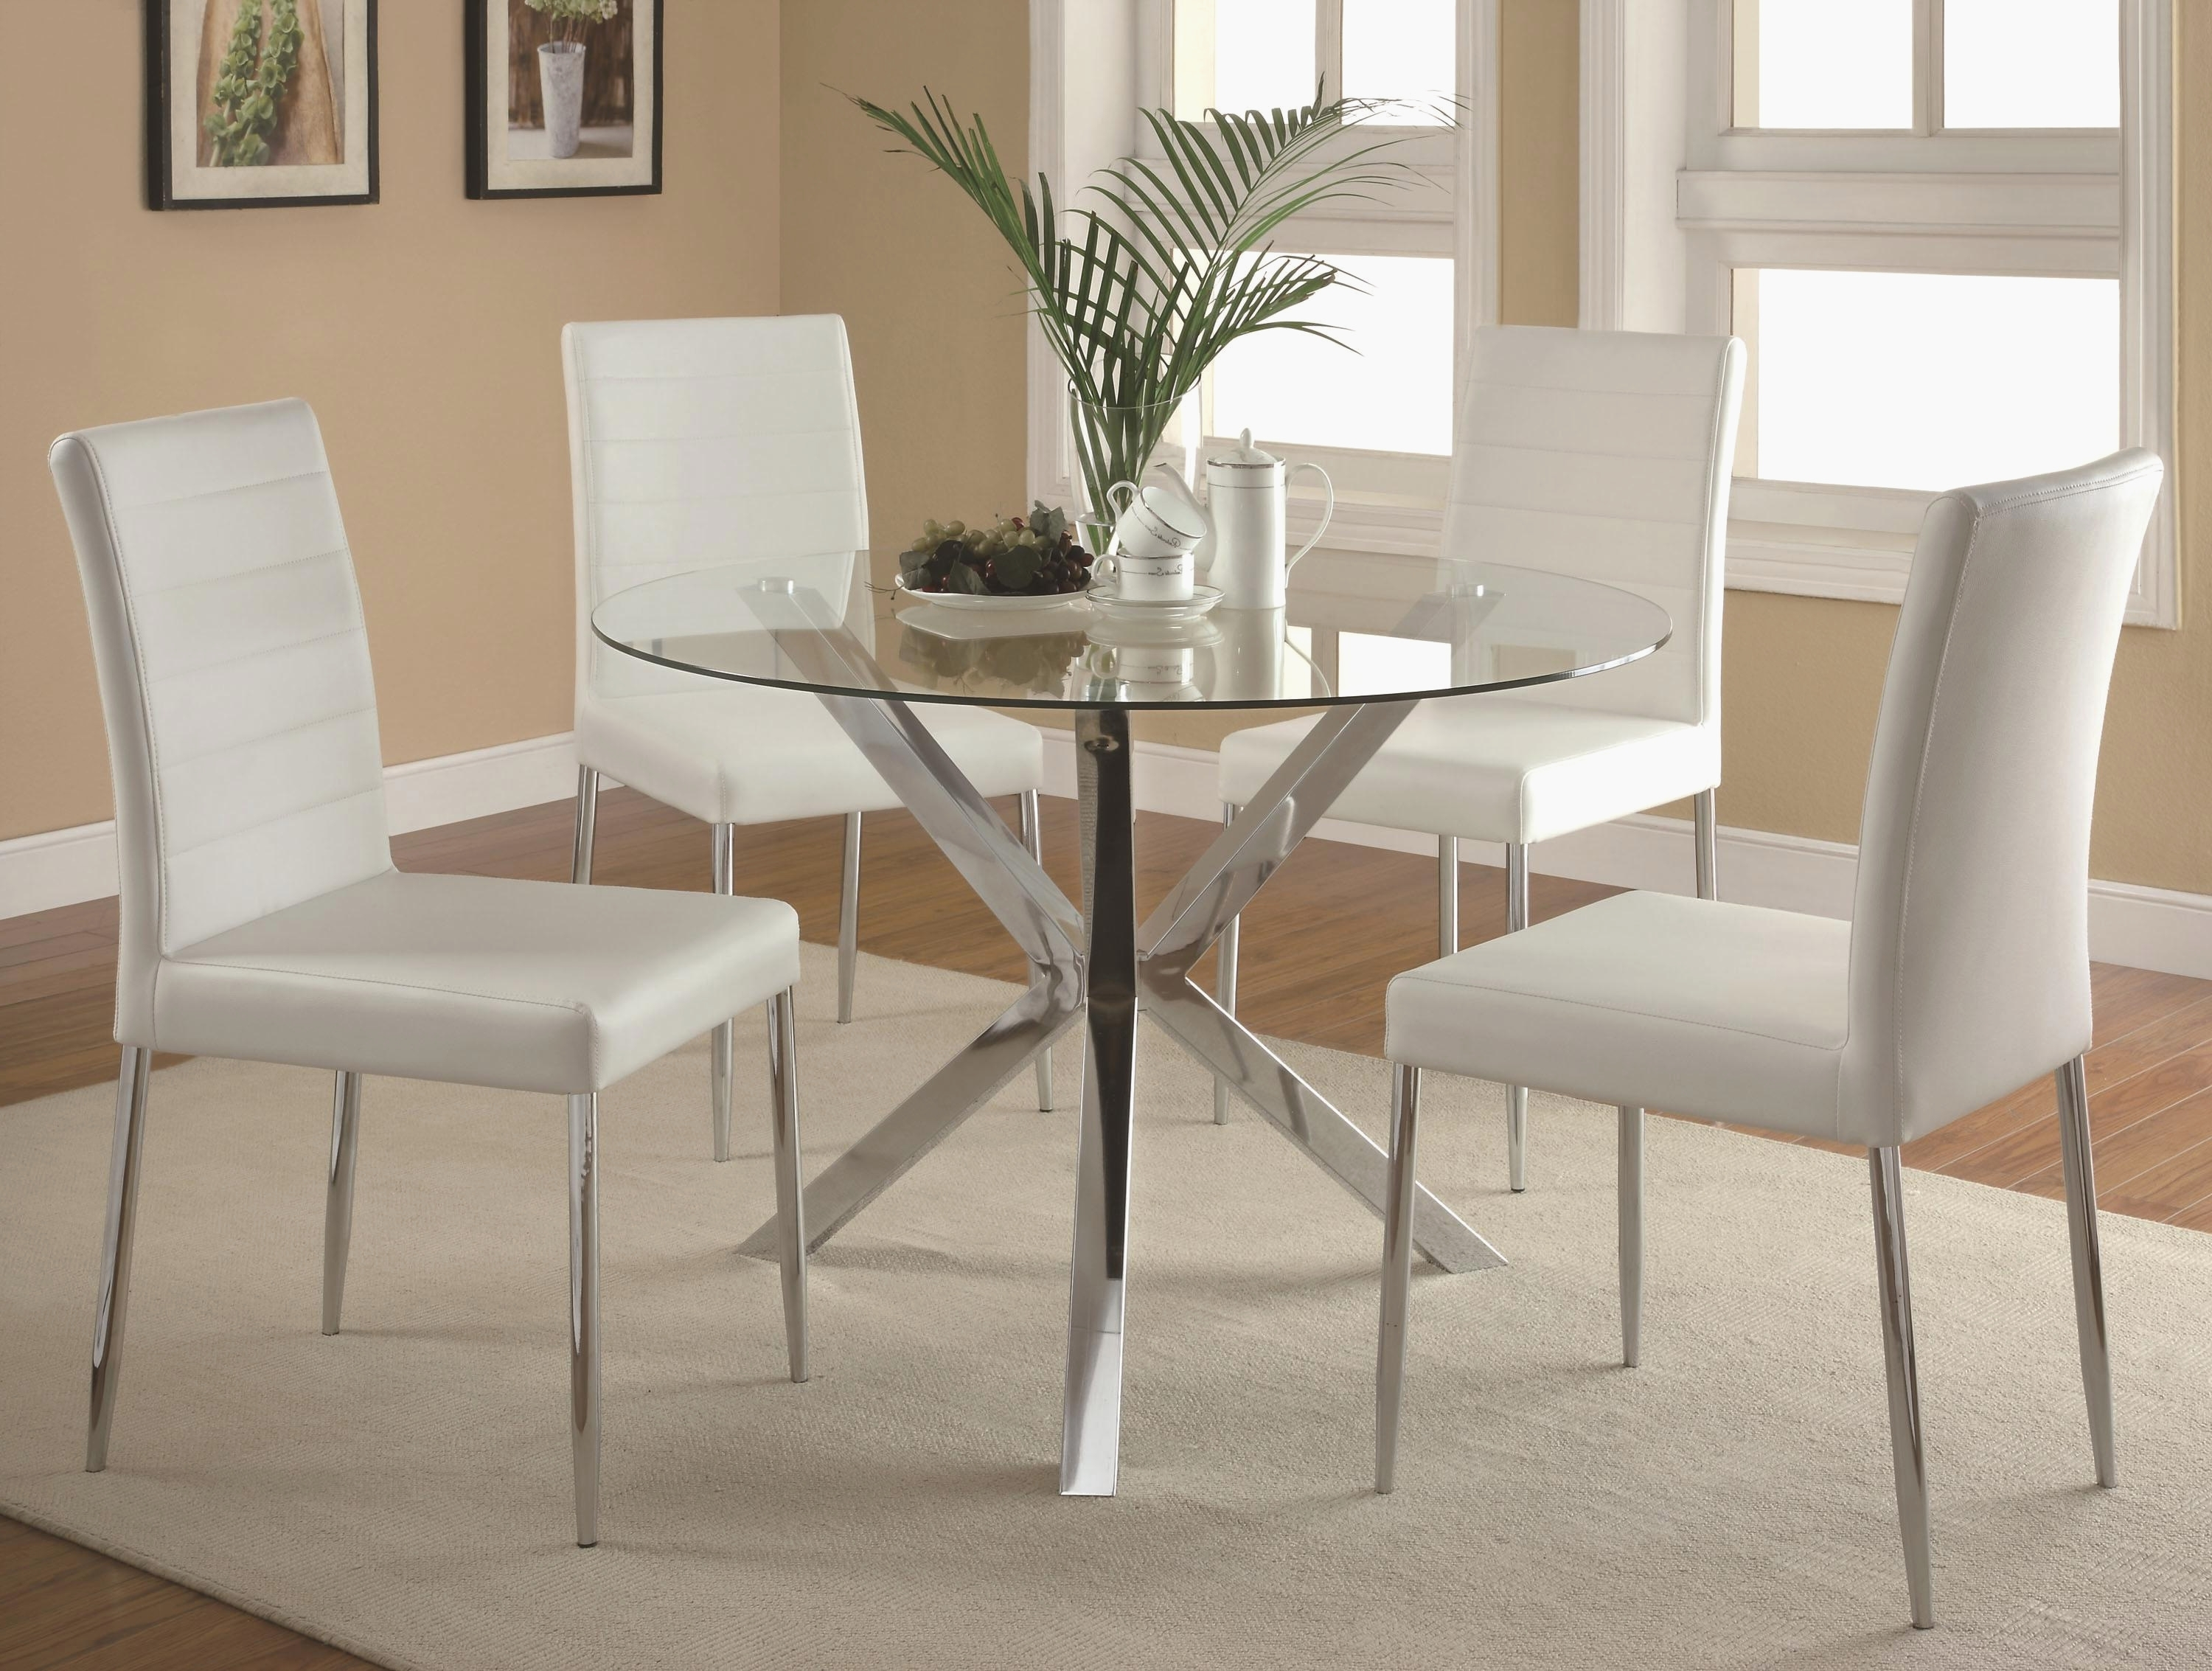 Glass And Chrome Dining Tables And Chairs With Regard To Preferred Glass And Chrome Dining Table Diy Dining Table Chairs Hd Cute Home (View 13 of 25)